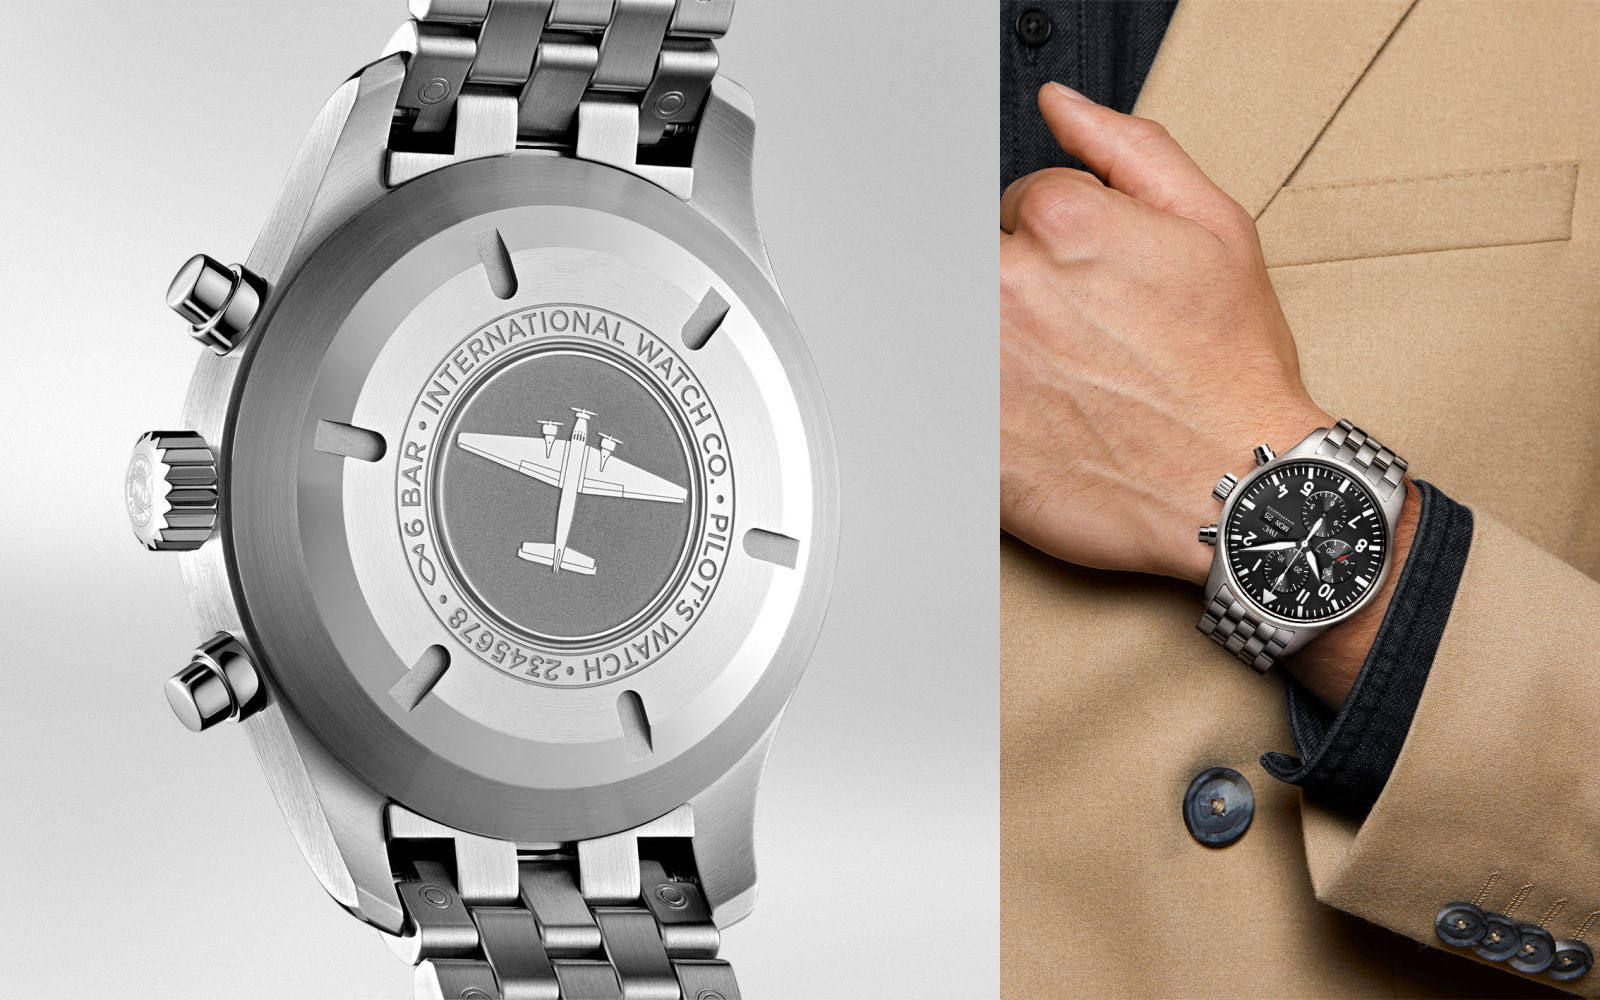 Pilot's Watch Chronograph IW377710 - feature